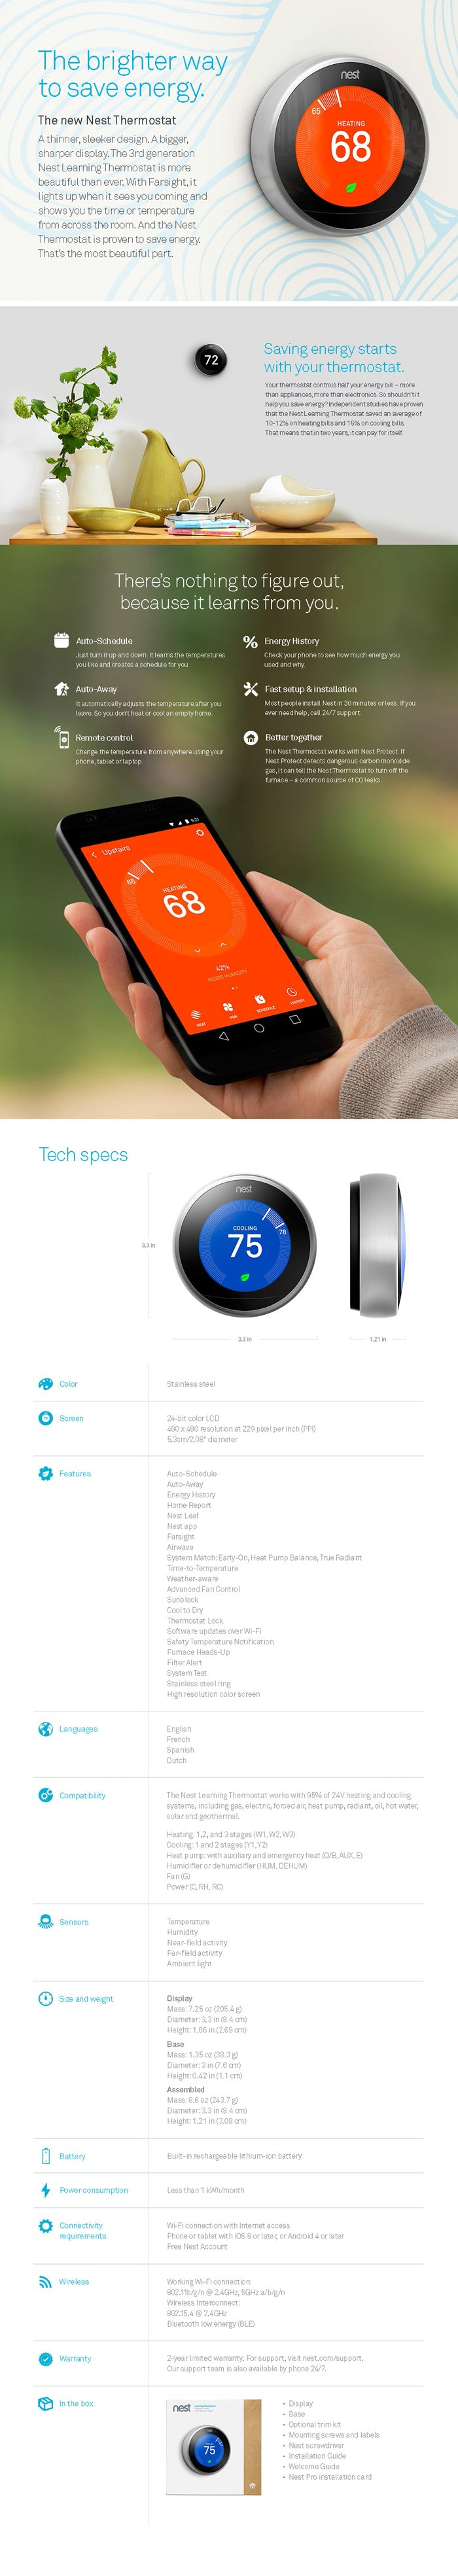 Nest Learning Thermostat 3rd Gen Refresh Smart Home Wiring Ring Third Generation Specifications Product Features